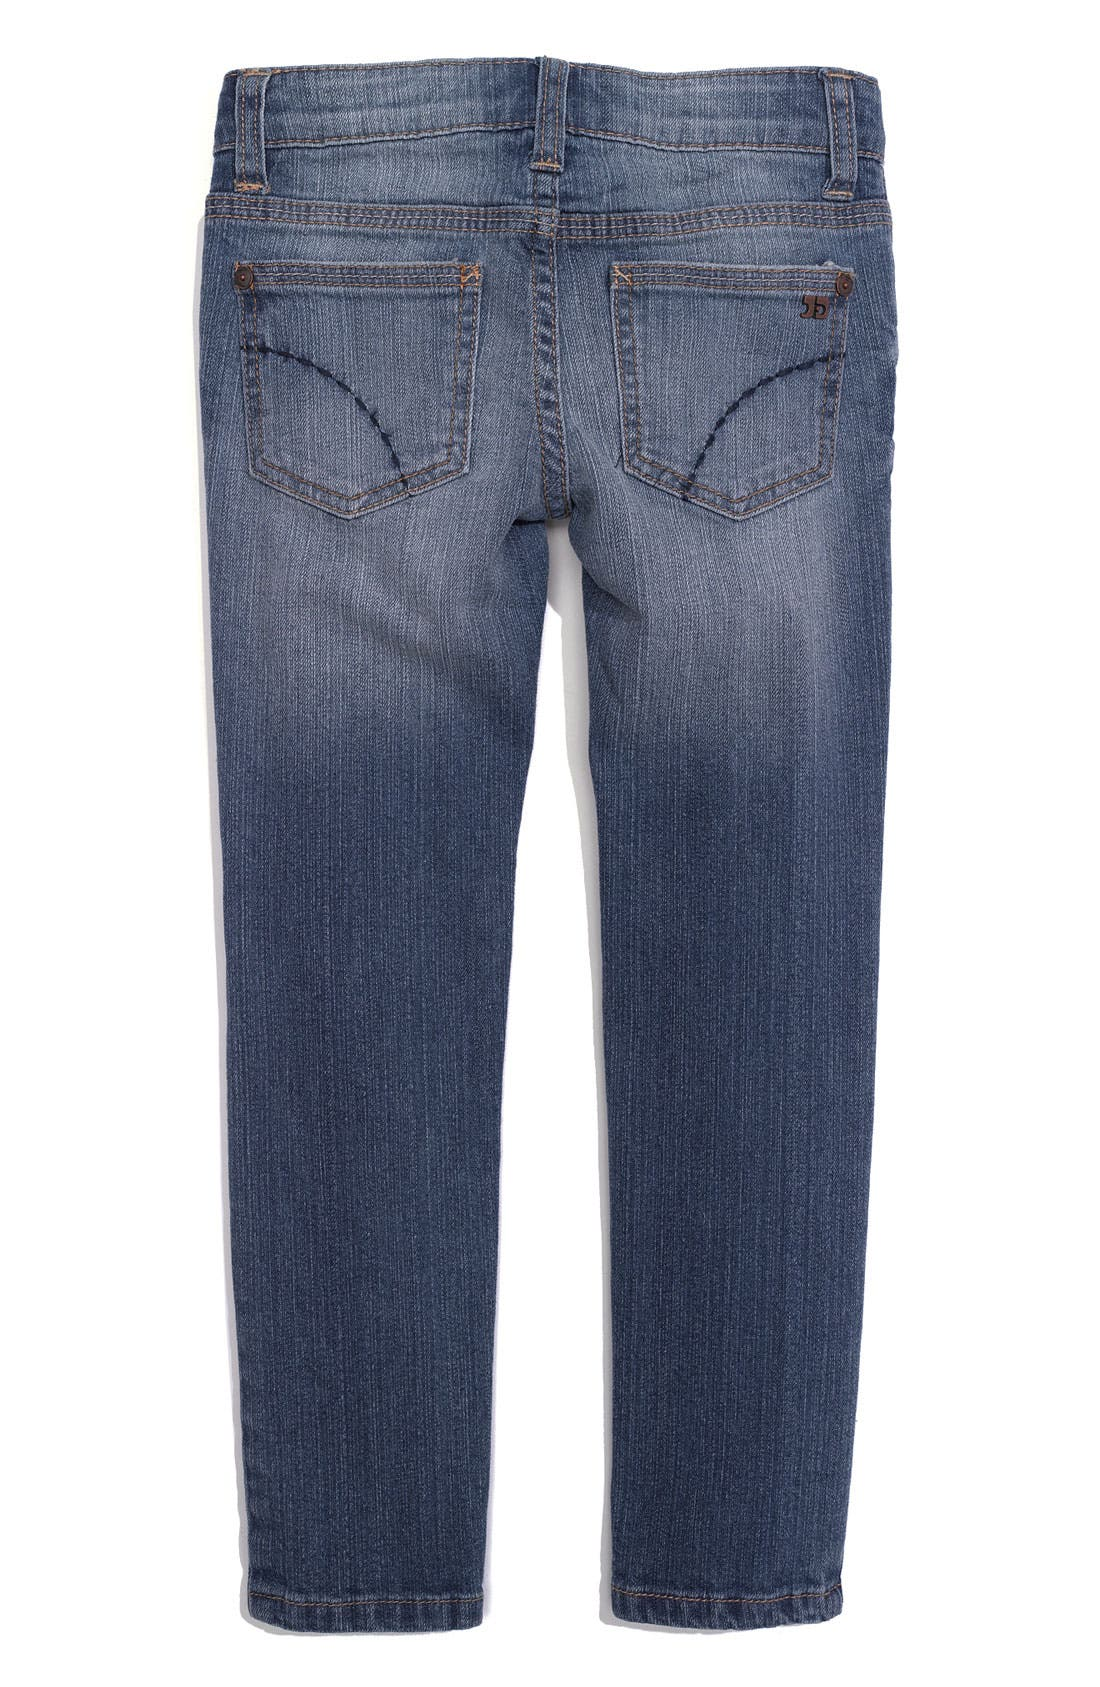 Alternate Image 1 Selected - Joe's Skinny Jeans (Toddler)